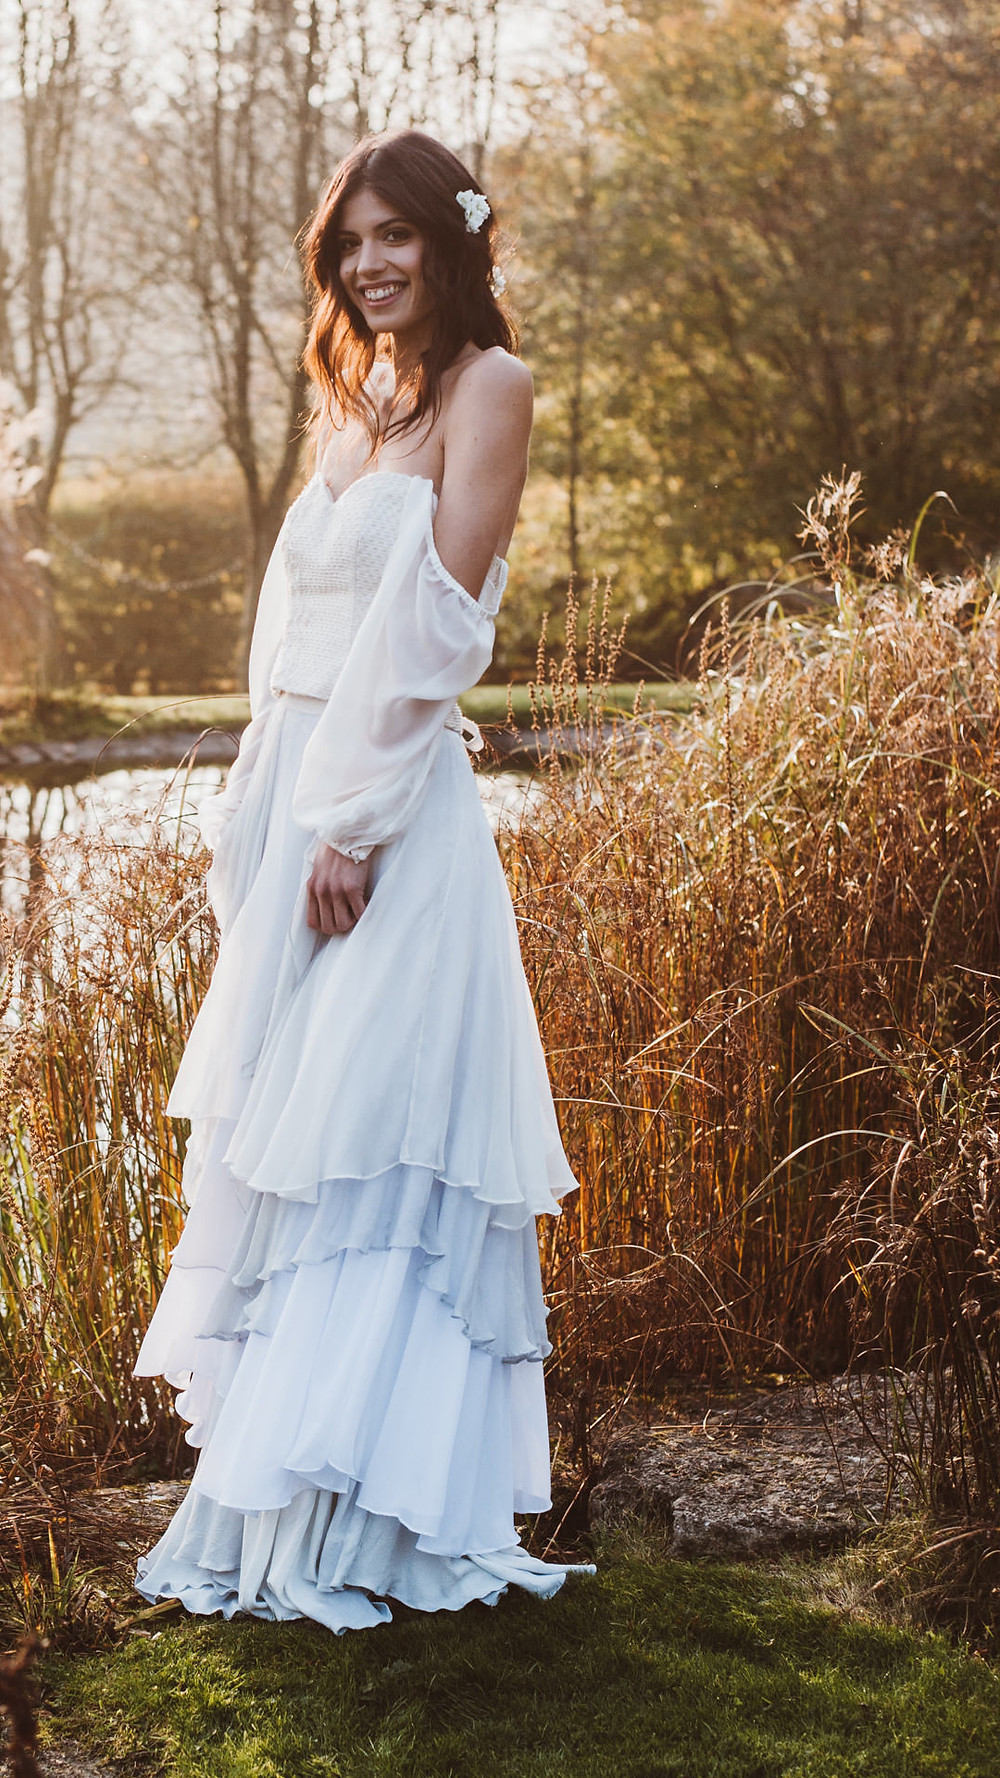 Organic Cotton ethical wedding dress Jessica Turner Designs